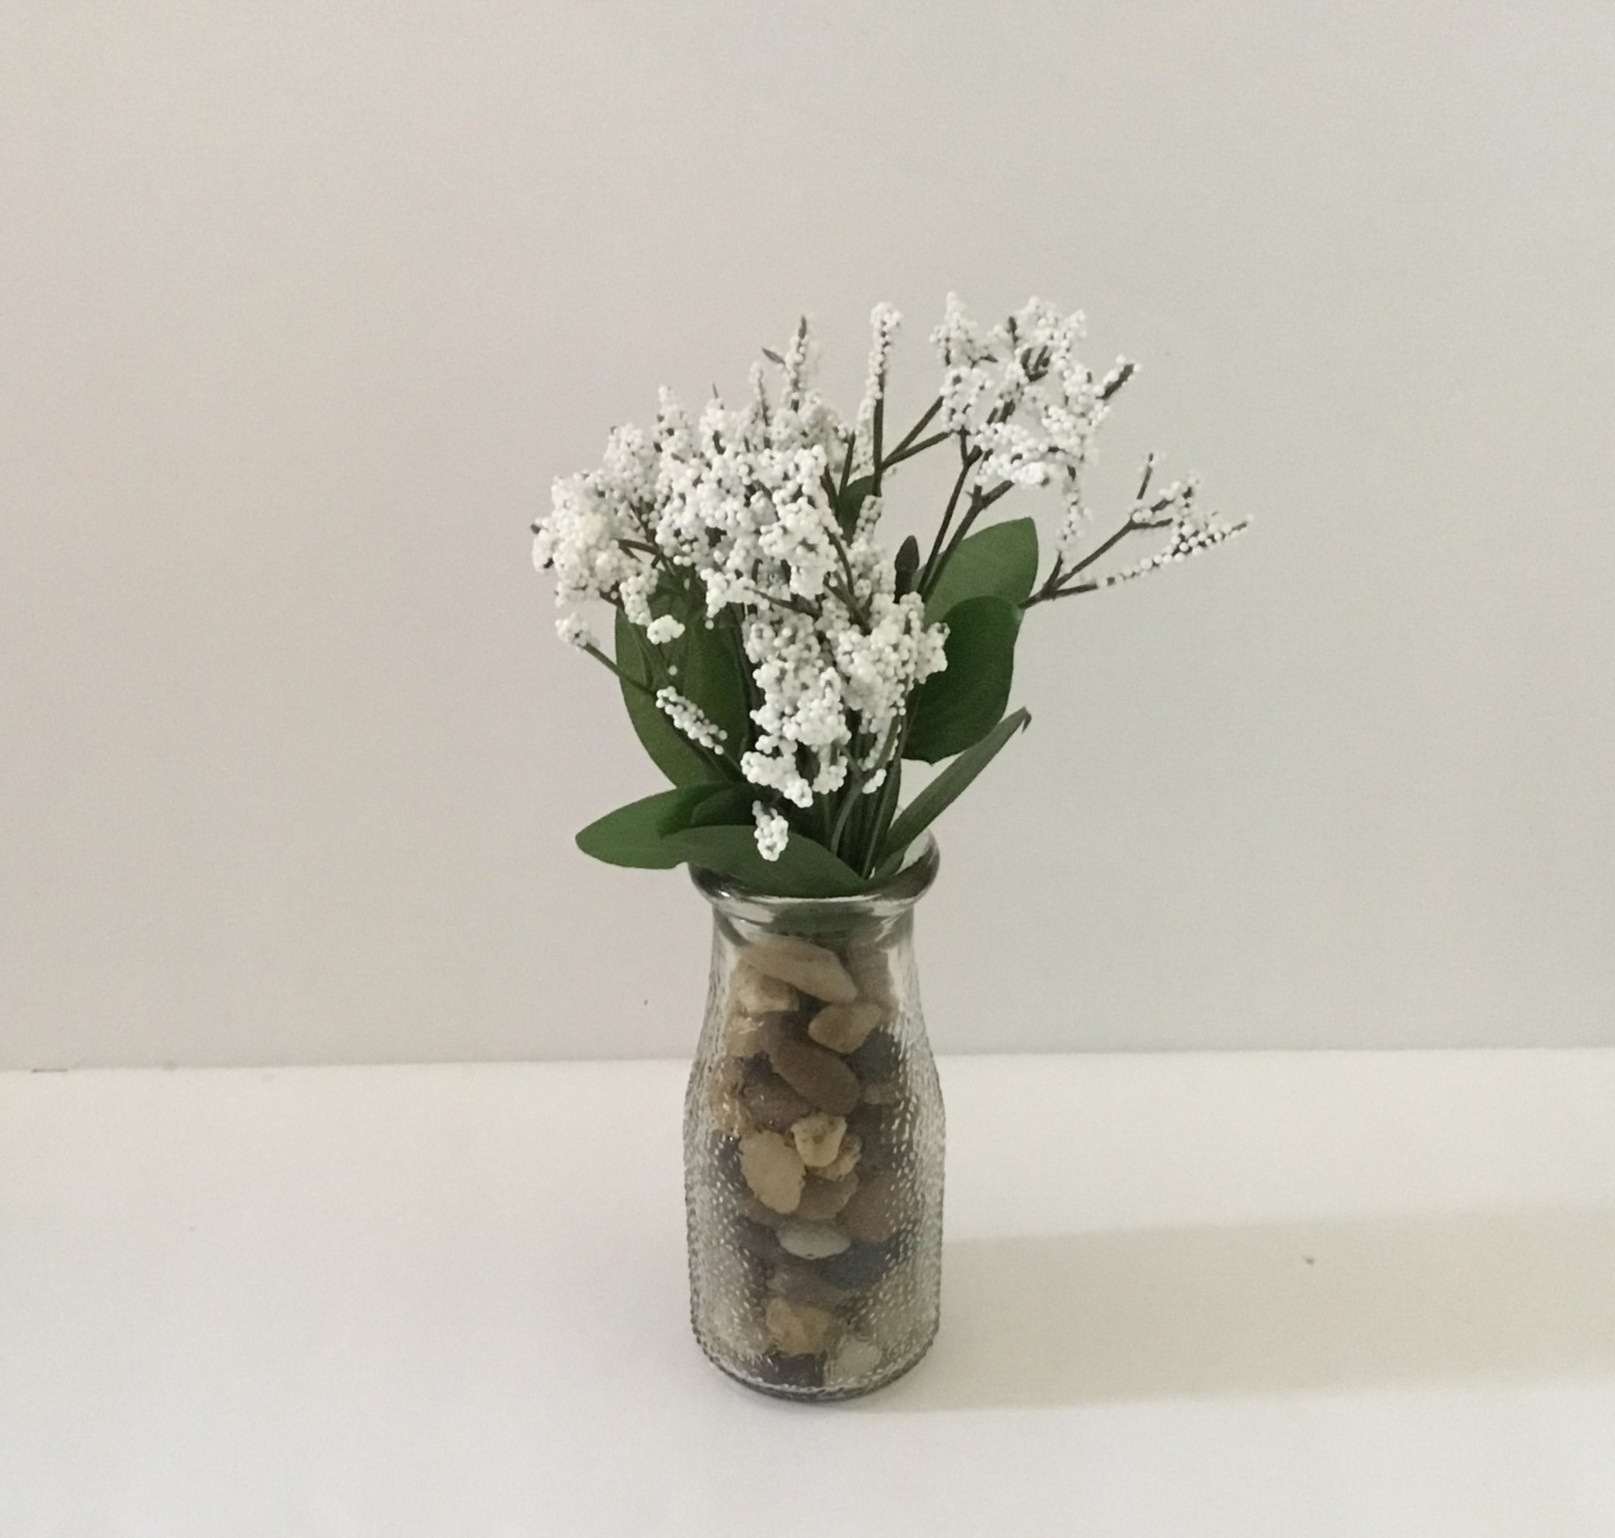 I MADE THIS THE DAY I POSTED THIS - $3 TOTAL FOR JAR, ROCKS AND FLOWERS